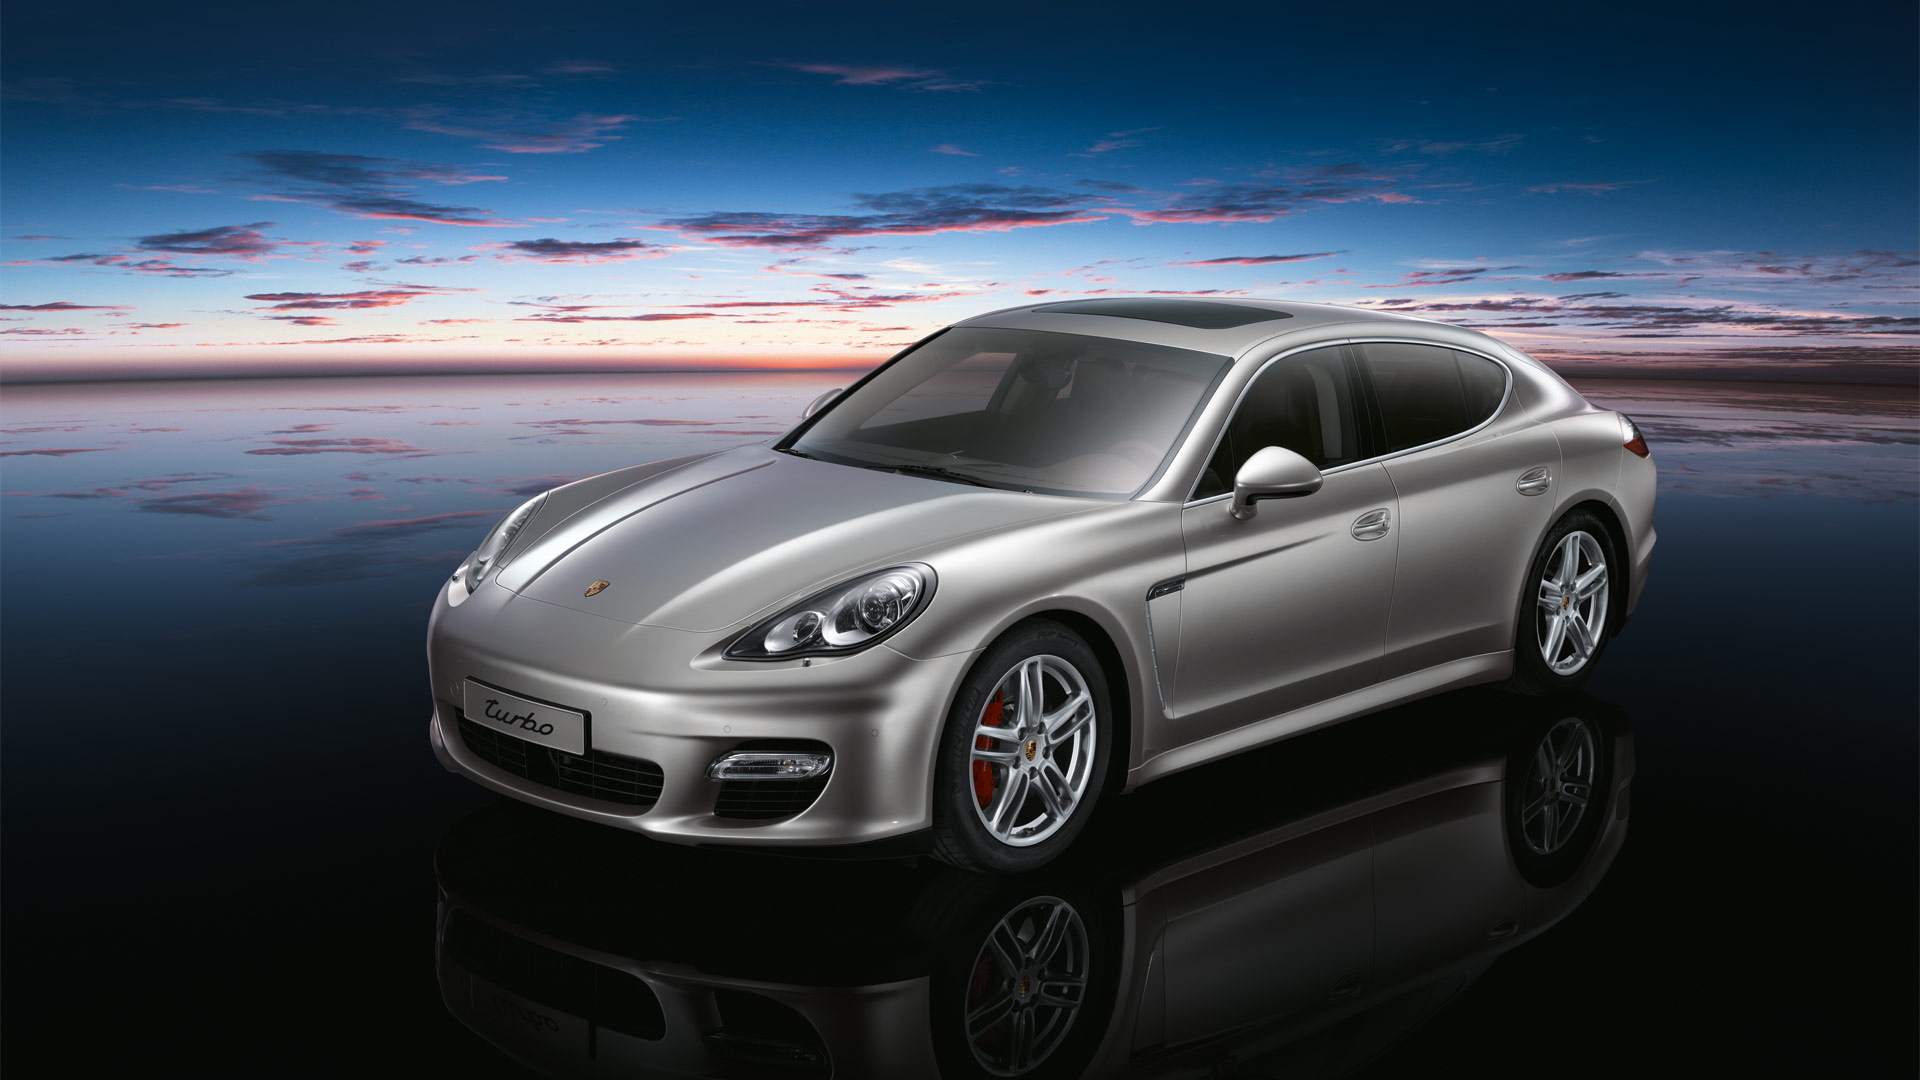 Porsche Panamera Turbo Wallpapers HD Wallpapers 1920x1080